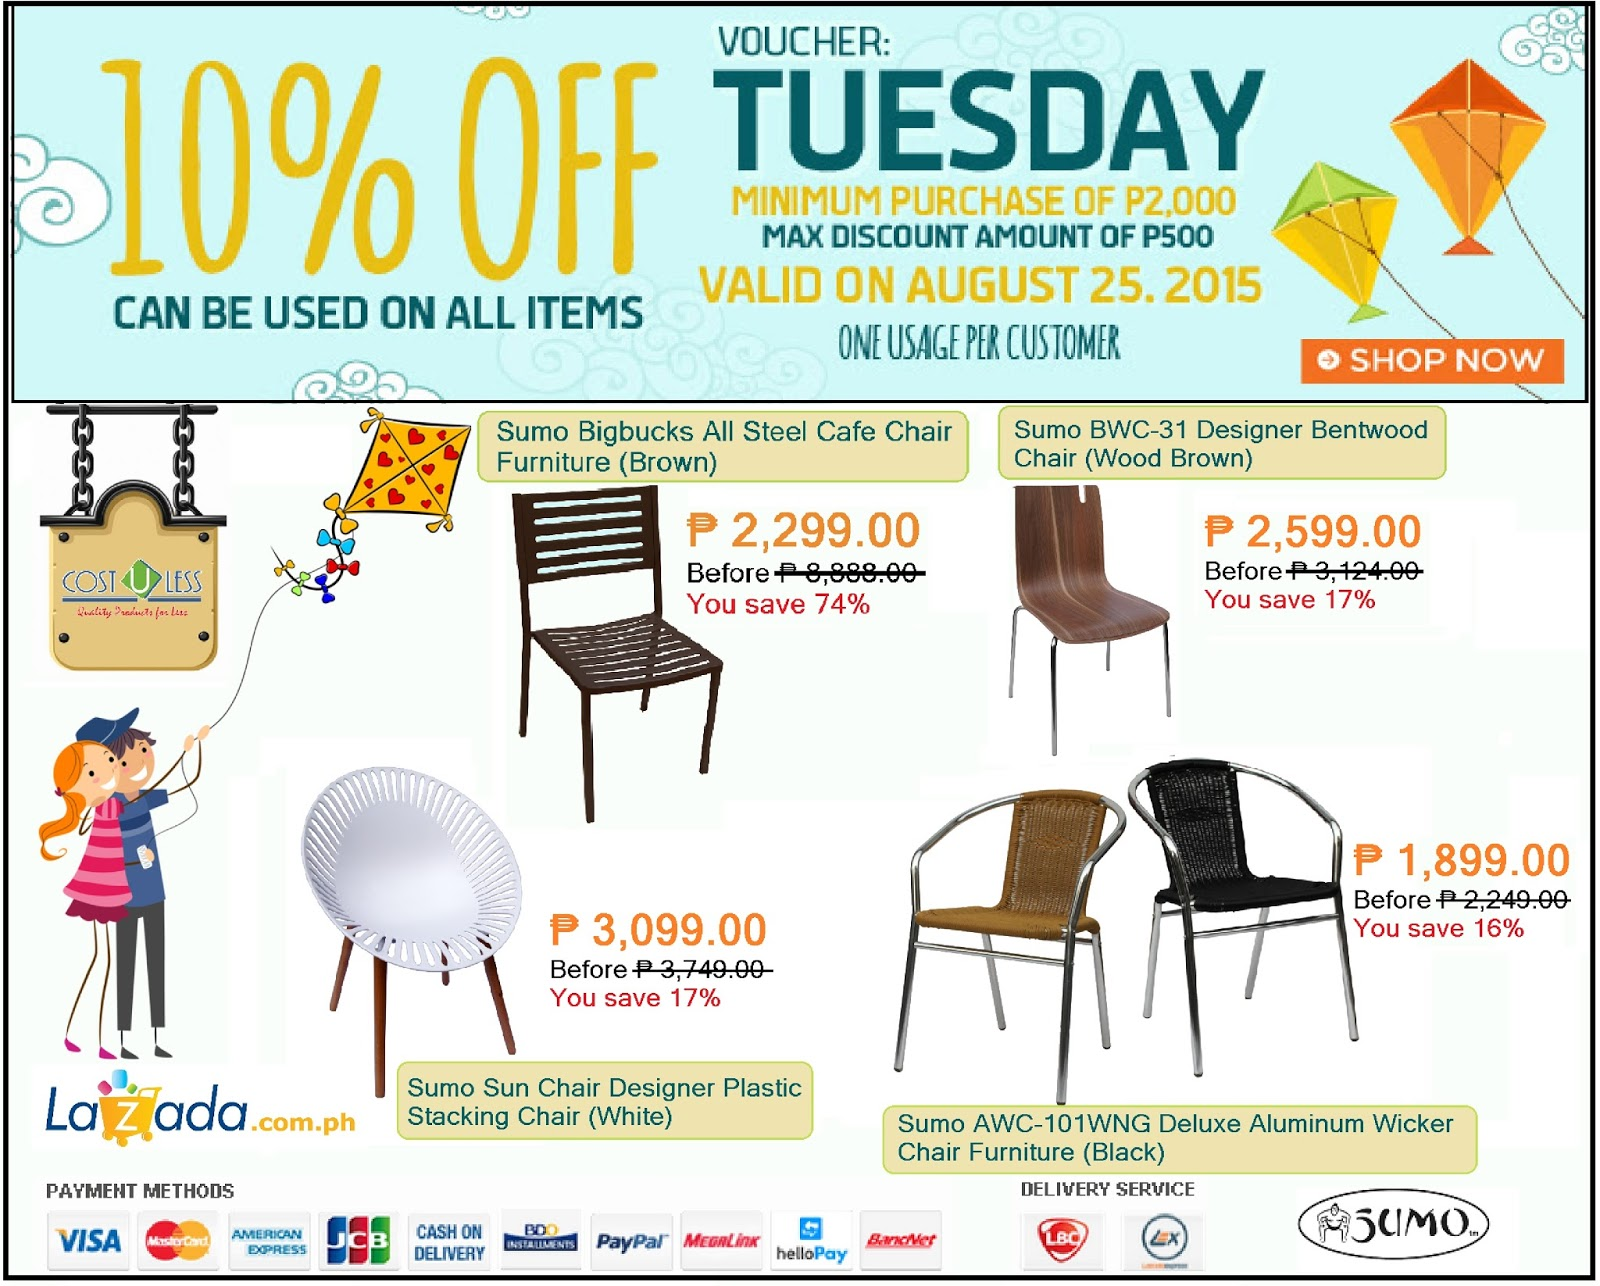 Get 10% Discount On Sumo Bar Restaurant Chairs At Lazadau0027s Tuesday Promo